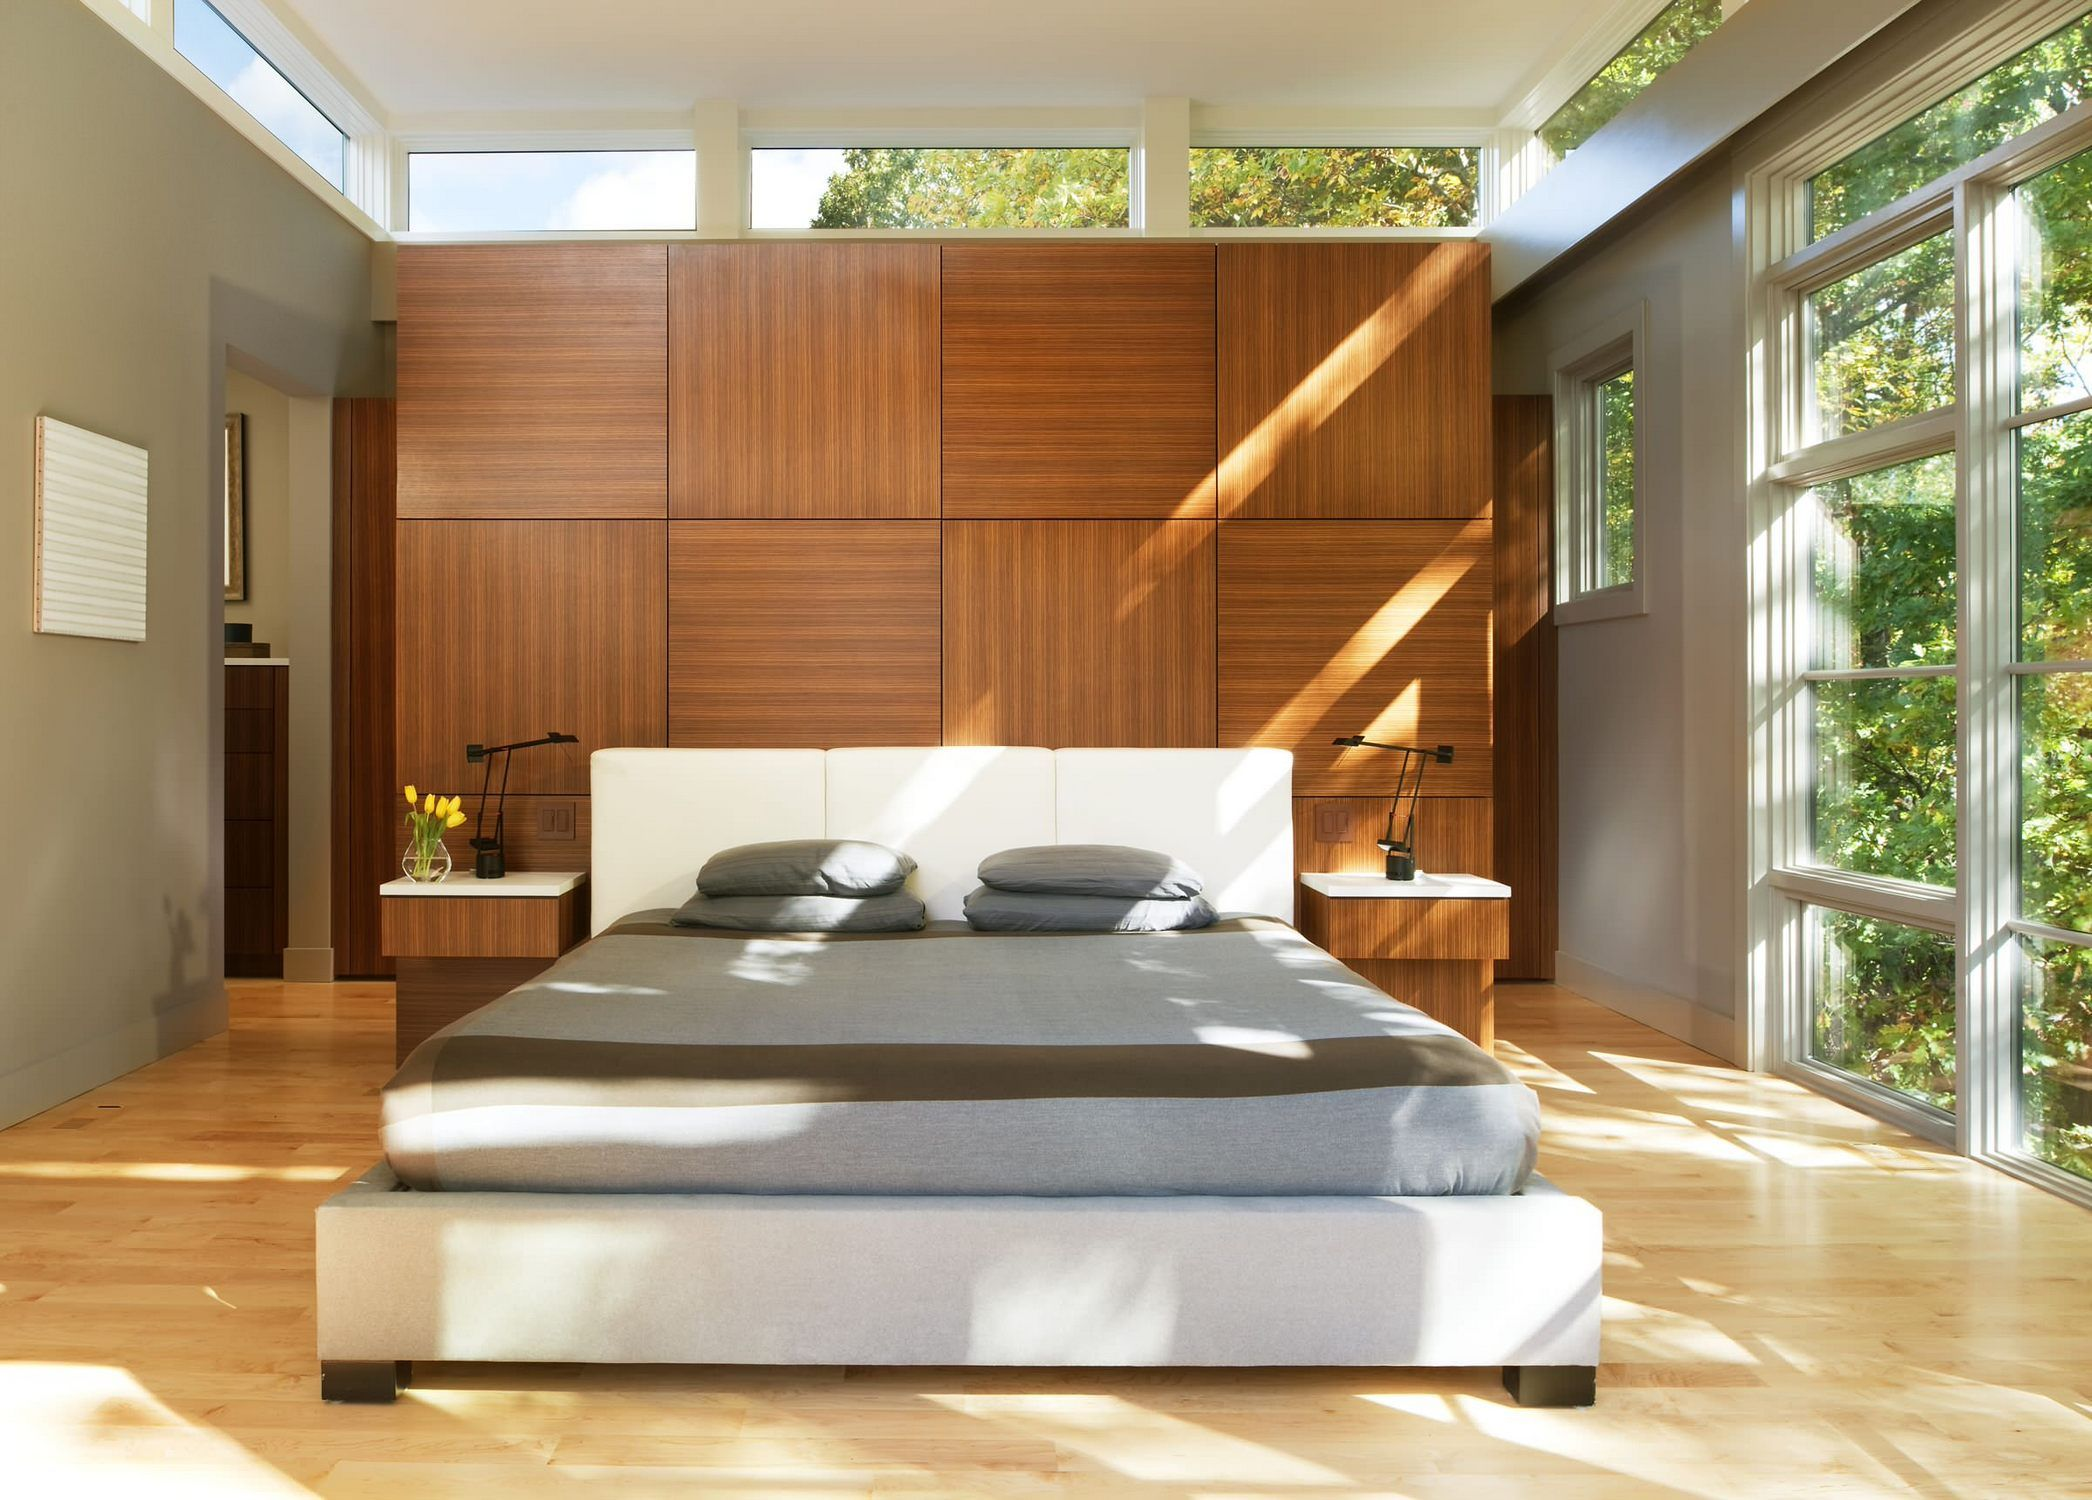 Window above bed ideas  wood paneling behind bed and clerestory windows in the bedroom